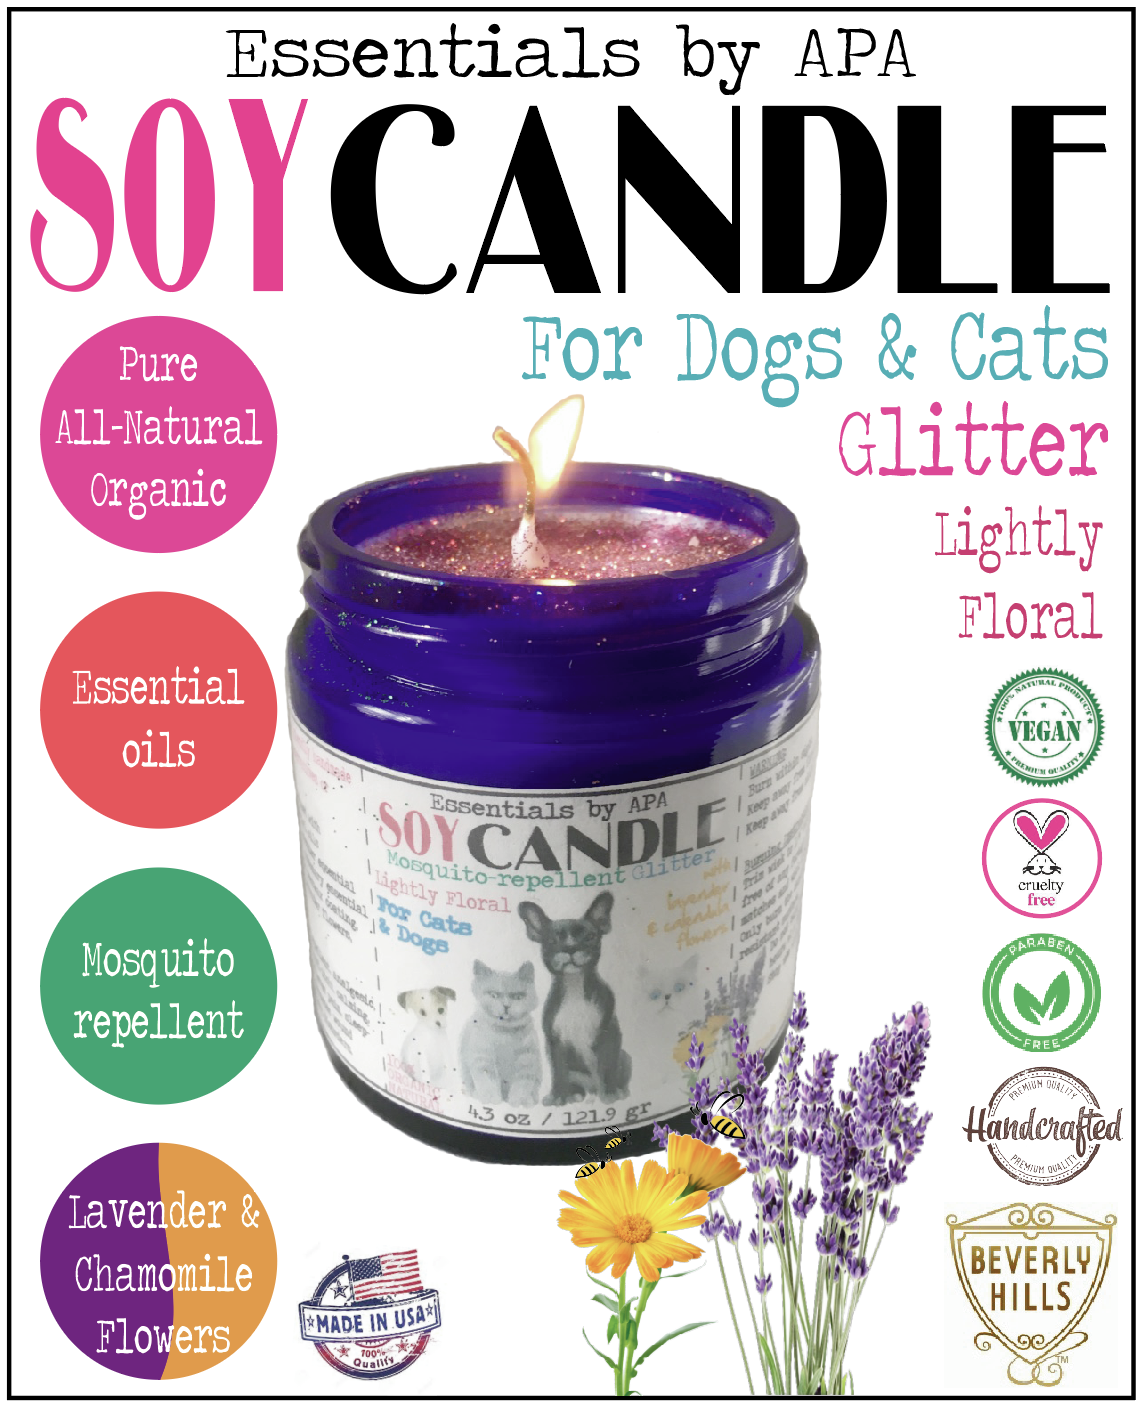 Soy Candle Mosquitorepellent Floral for Cats Dogs